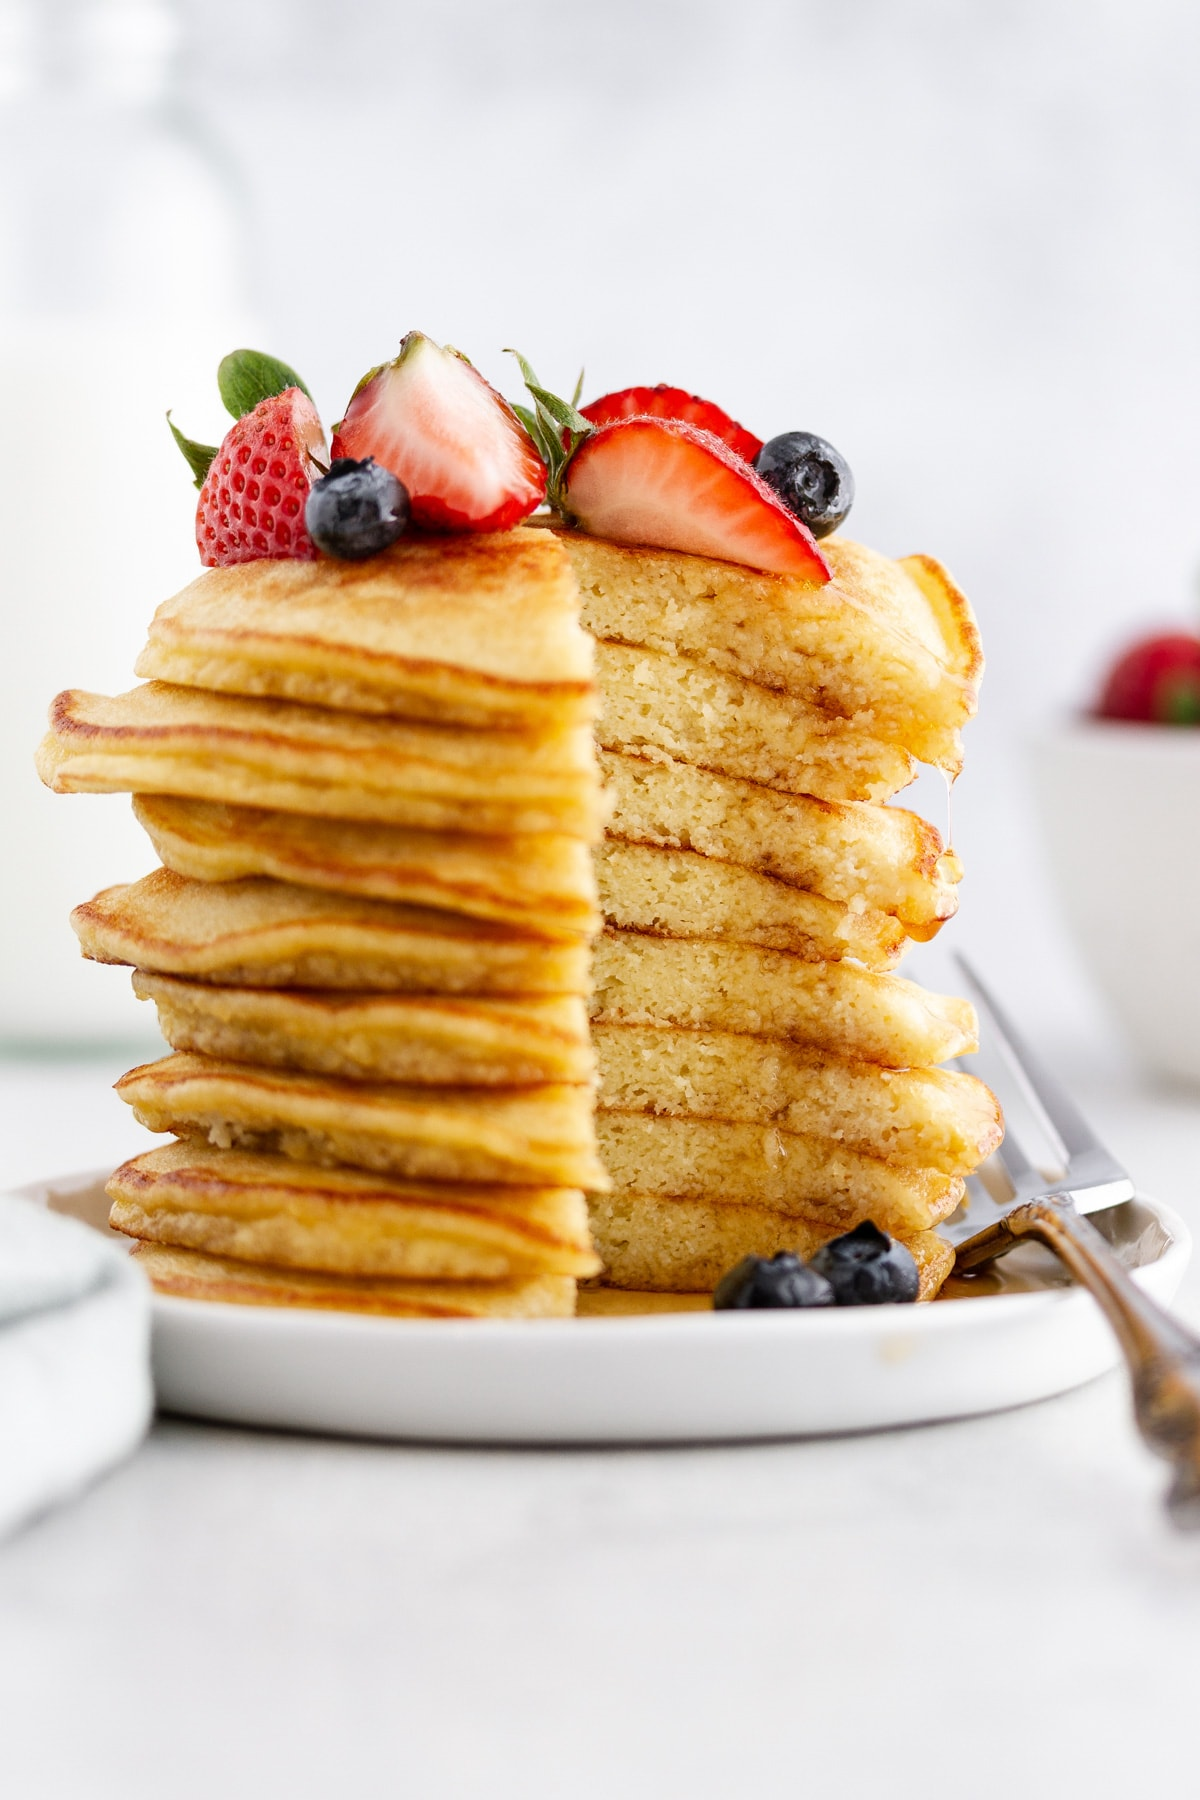 a cross section of a stack of coconut flour pancakes on a plate